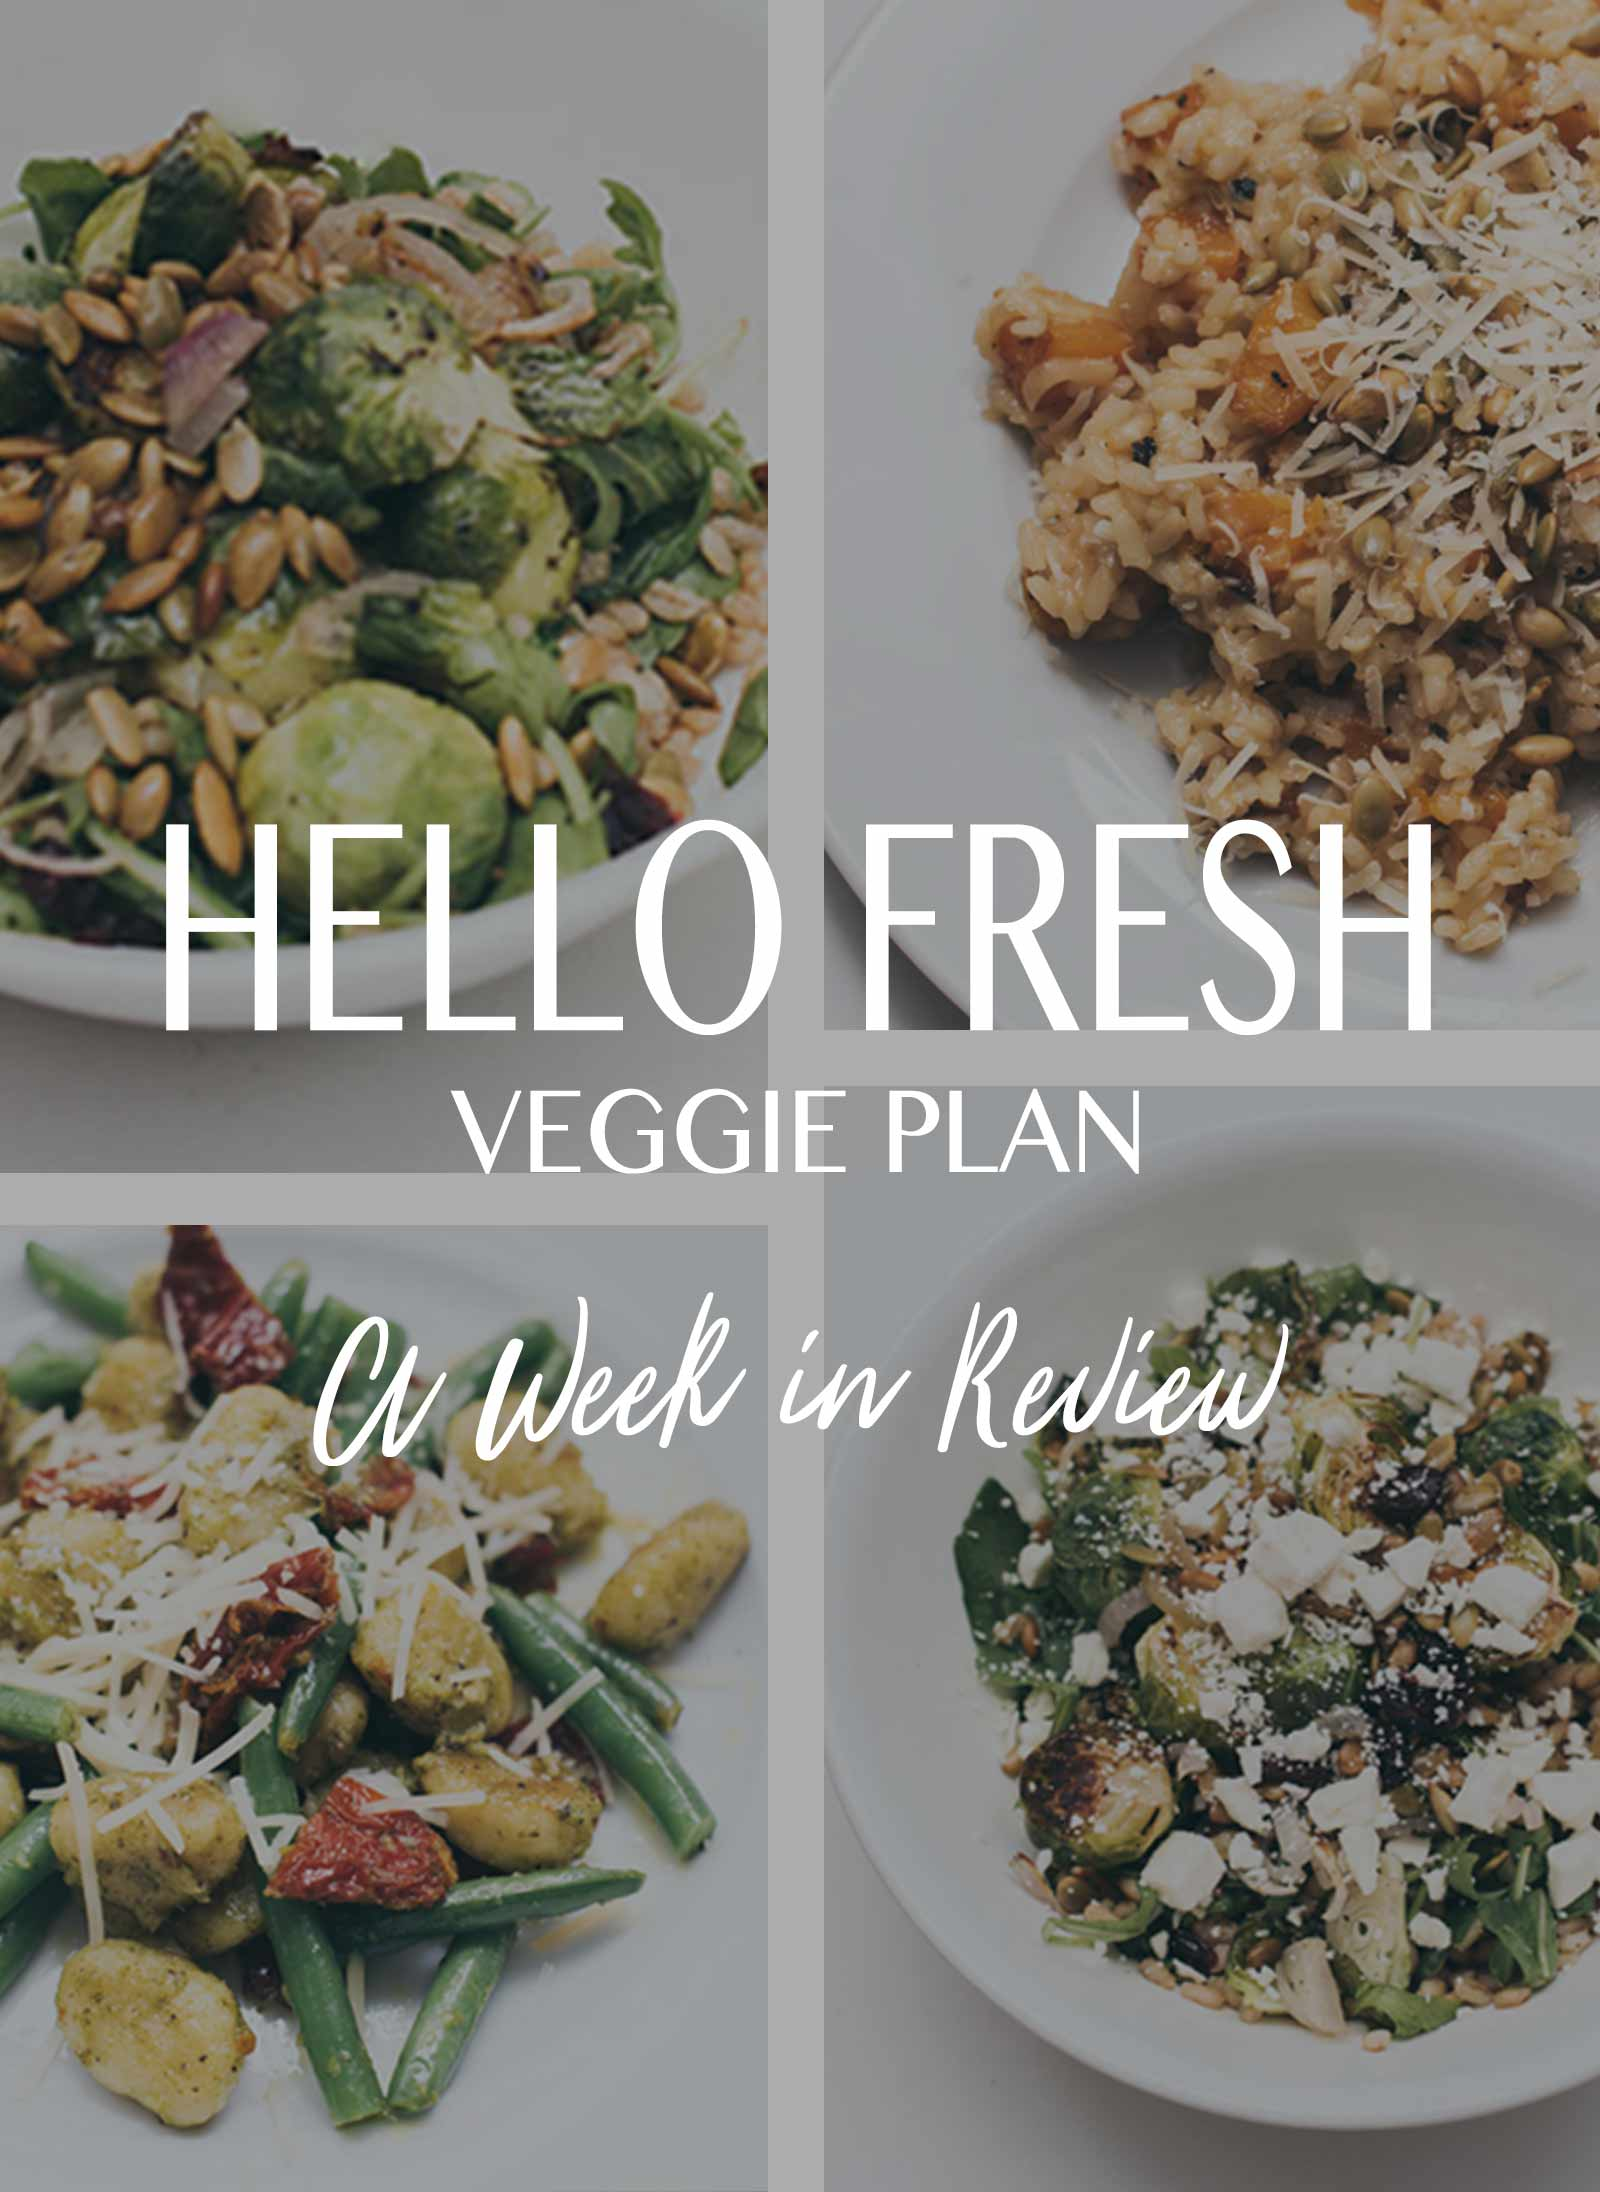 Meal Kit Delivery Service  Hellofresh Student Discount Coupon Code 2020